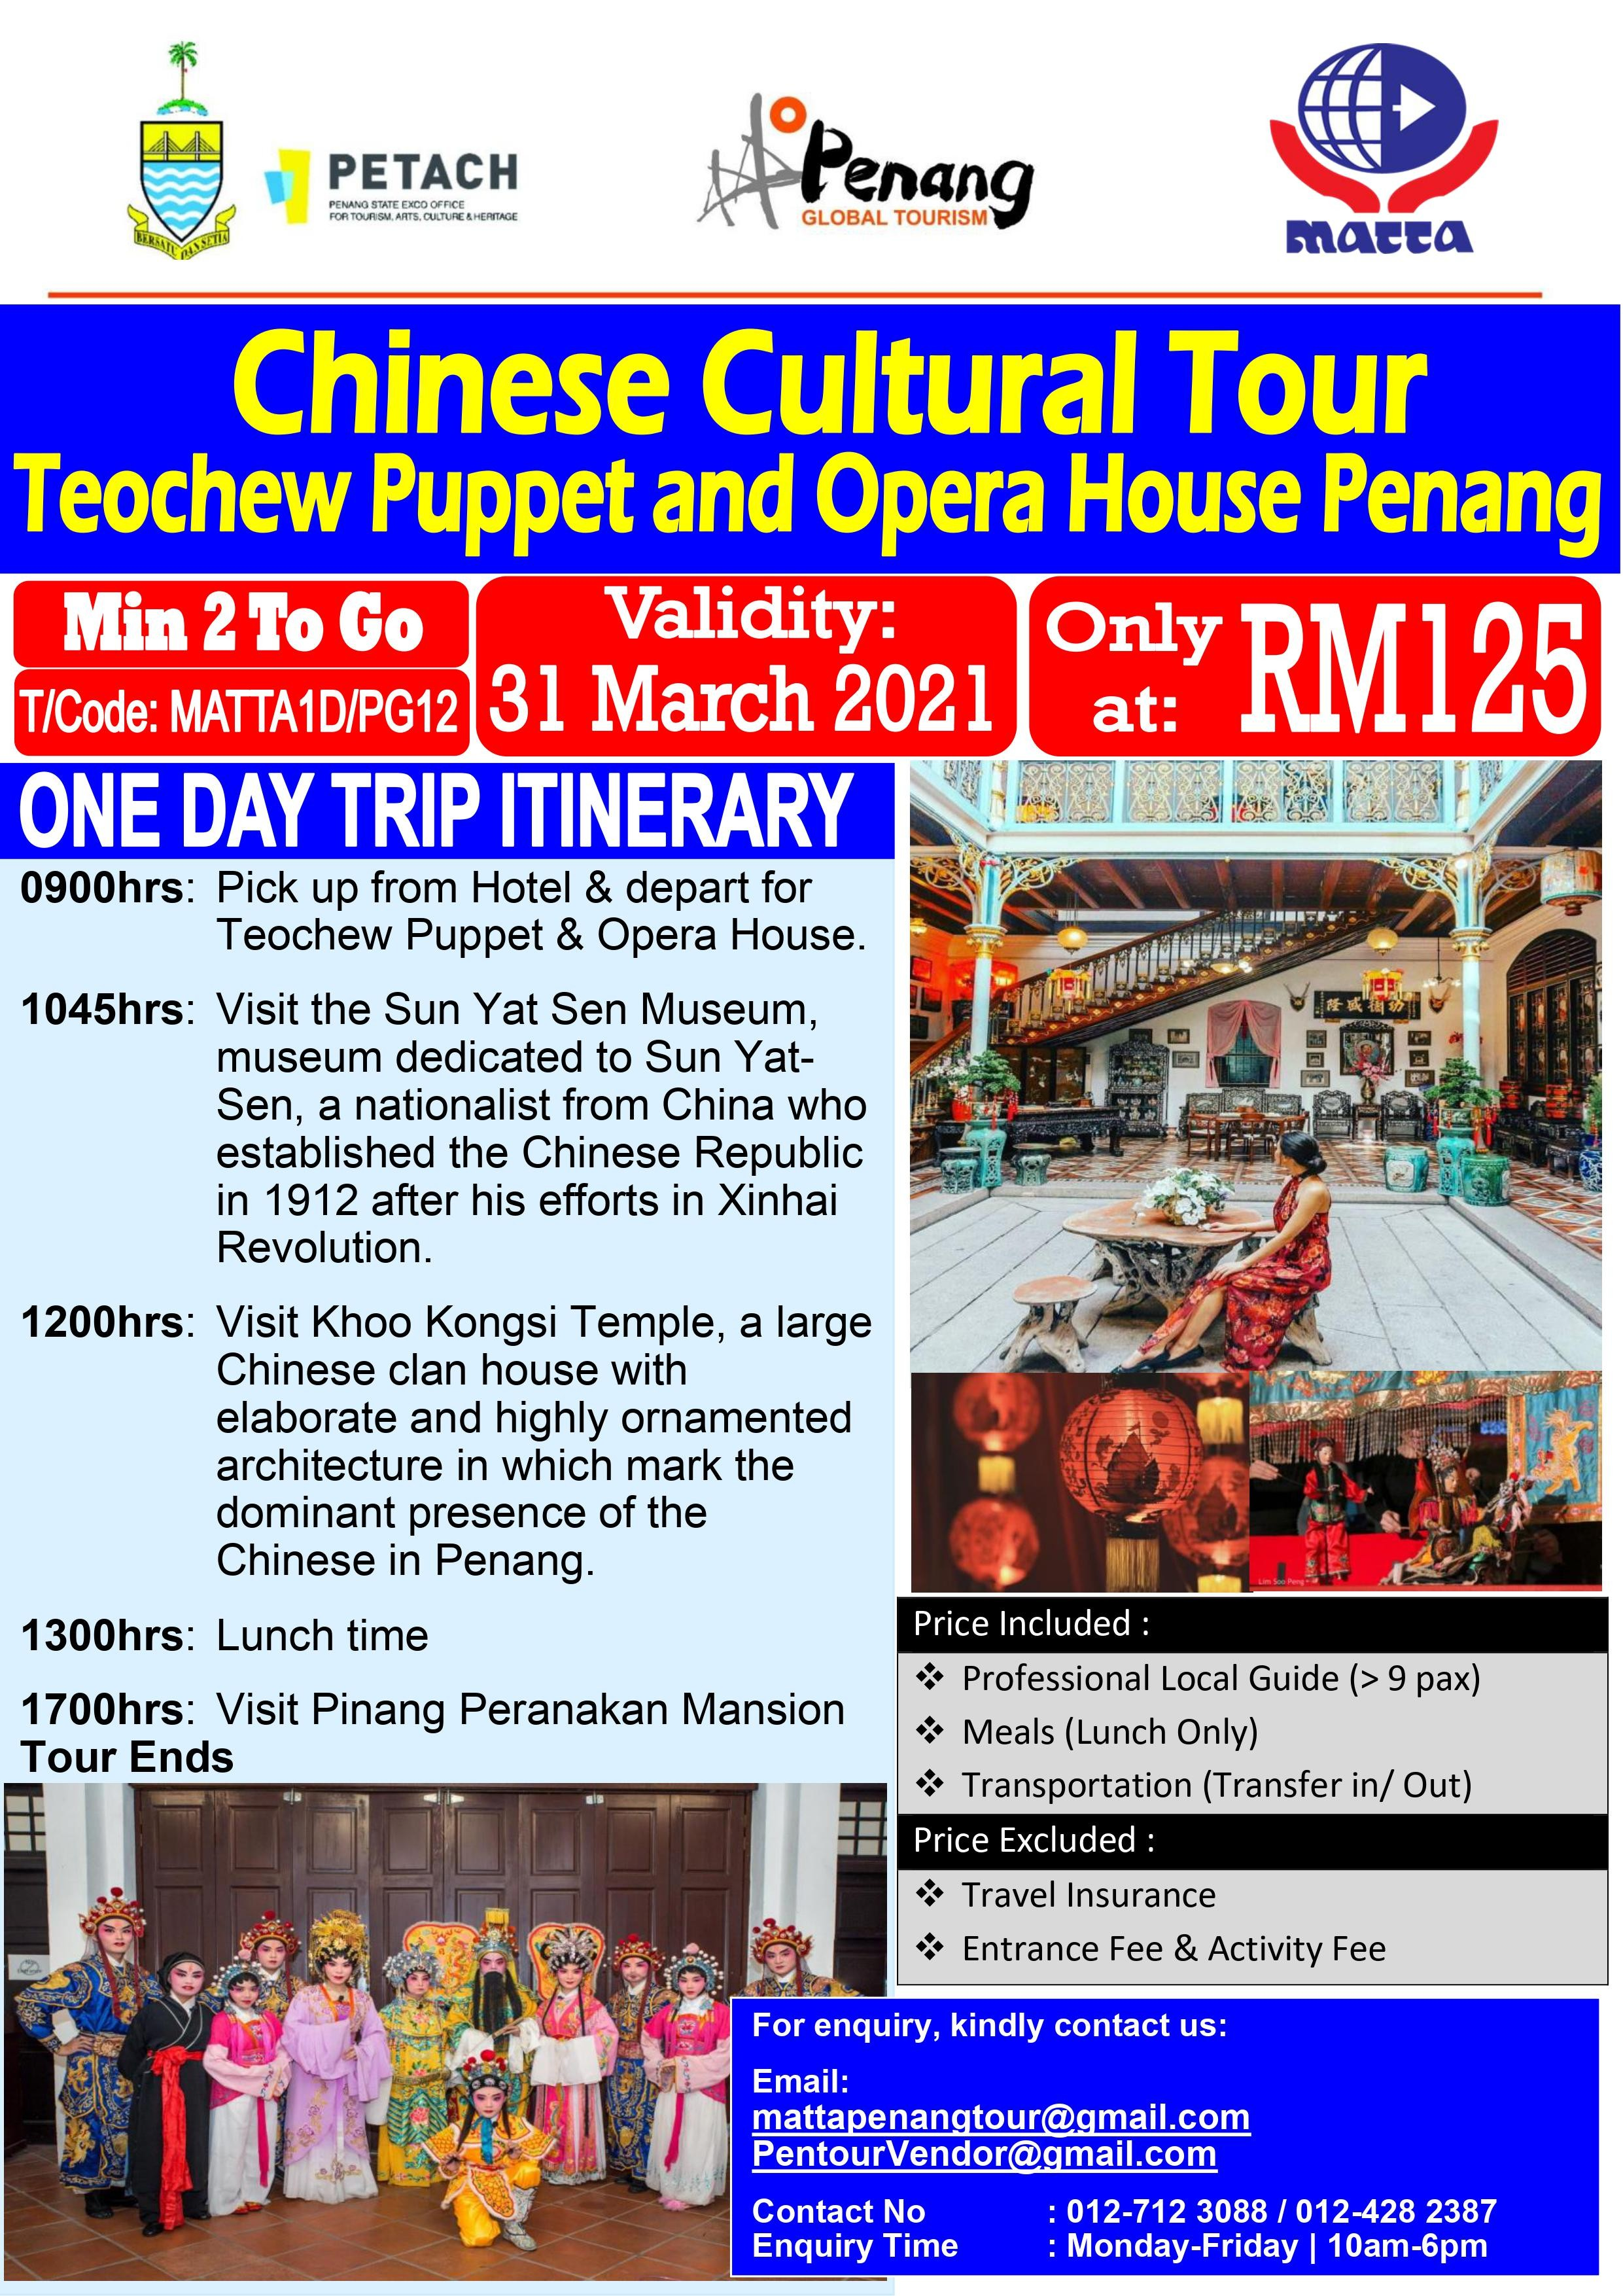 Chinese Cultural Tour - 1 Day